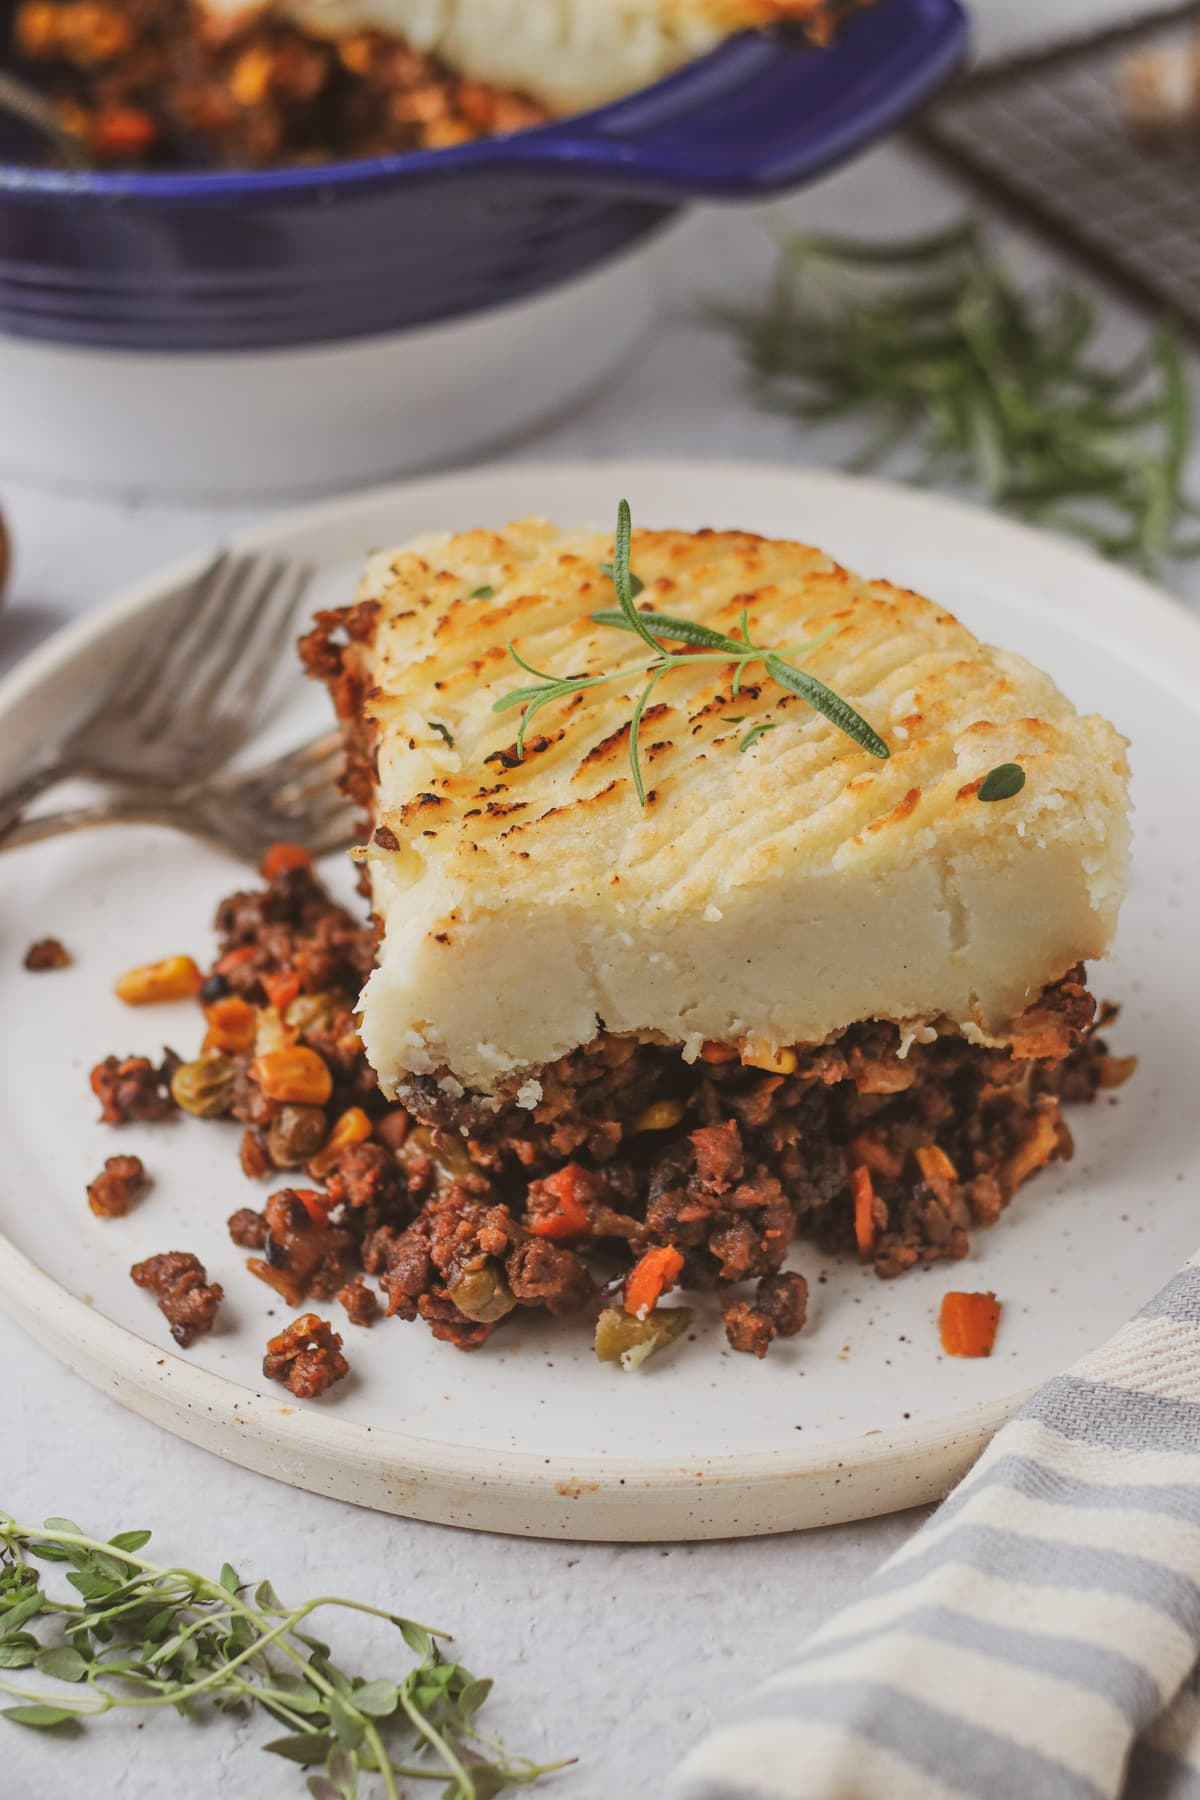 slice of vegan shepherd's pie on a white plate with remaining casserole in background